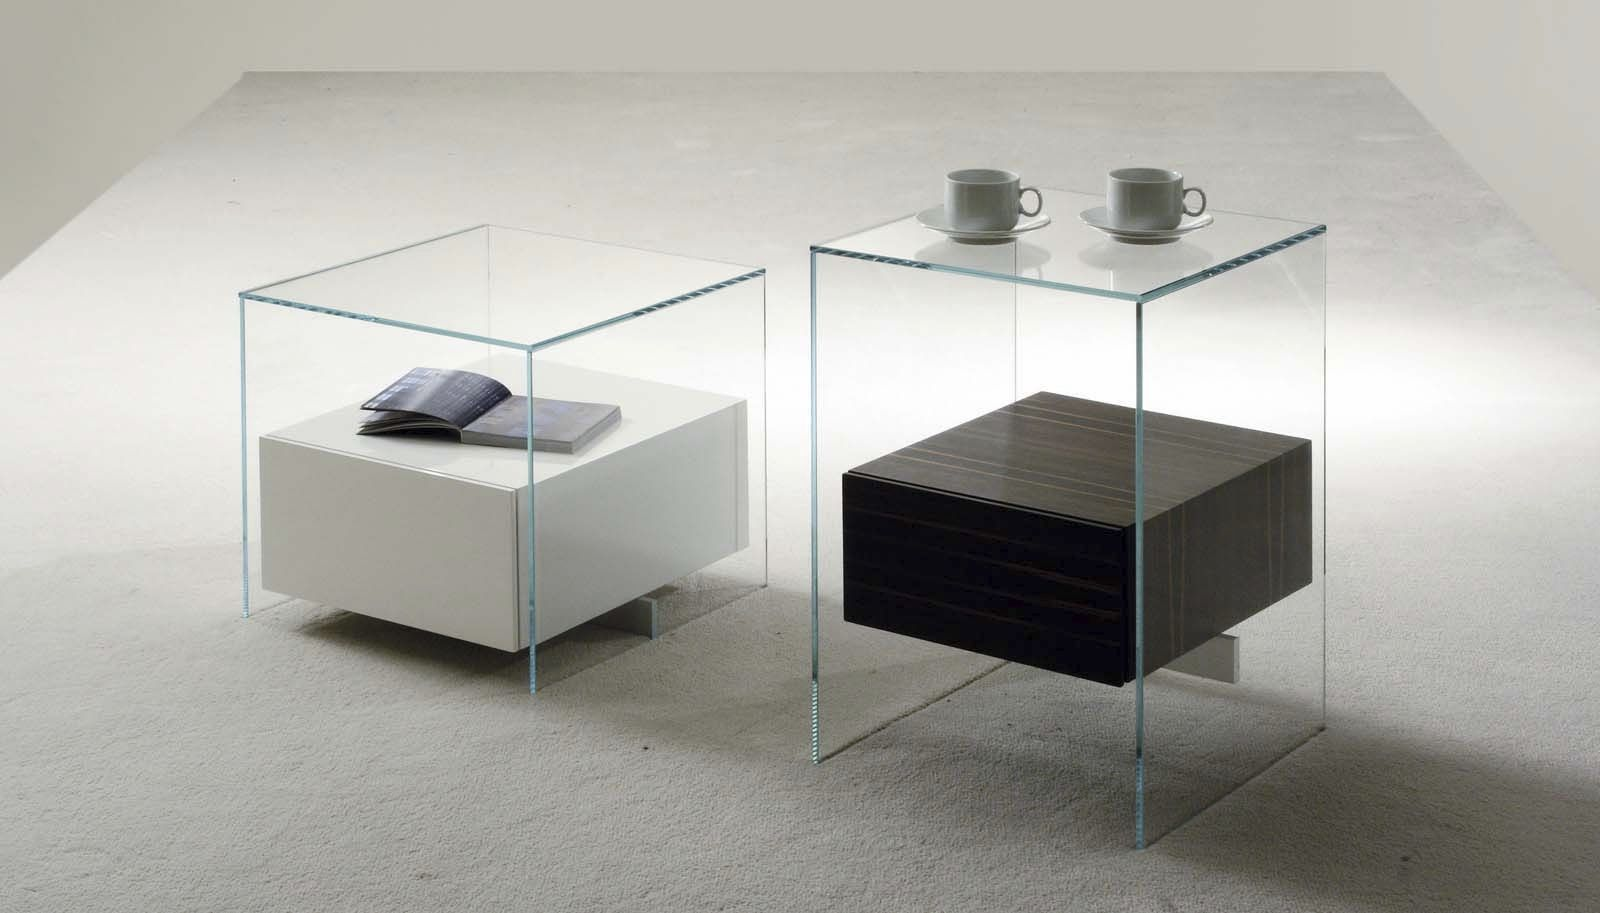 Table De Chevet Verre Table De Chevet Design En Verre Design En Image